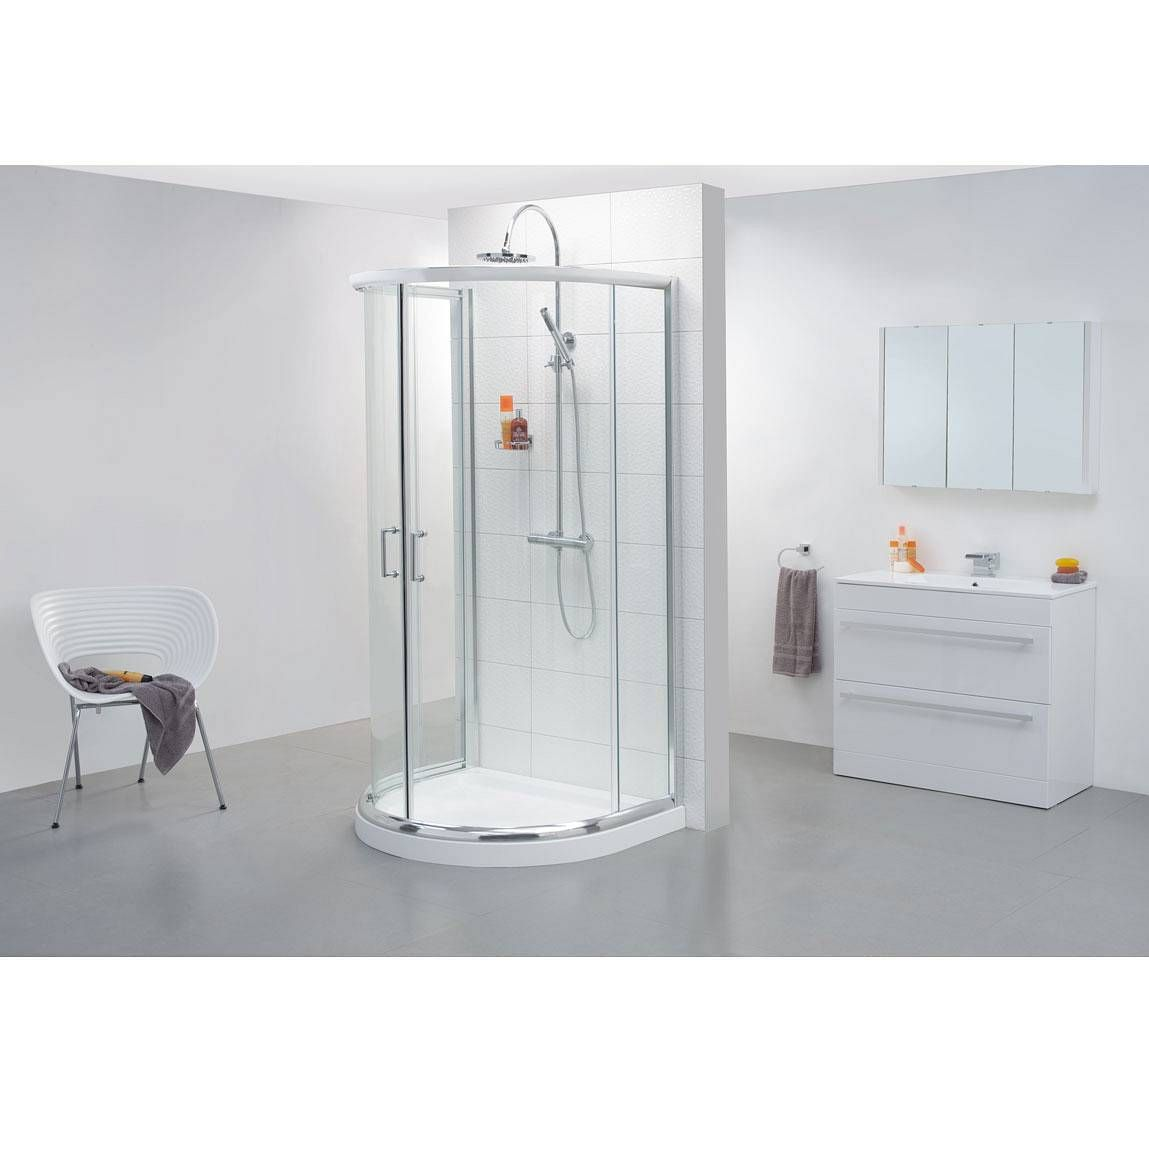 V6+D+Shaped+Shower+Enclosure | Lynn\'s recipes | Pinterest | Shower ...